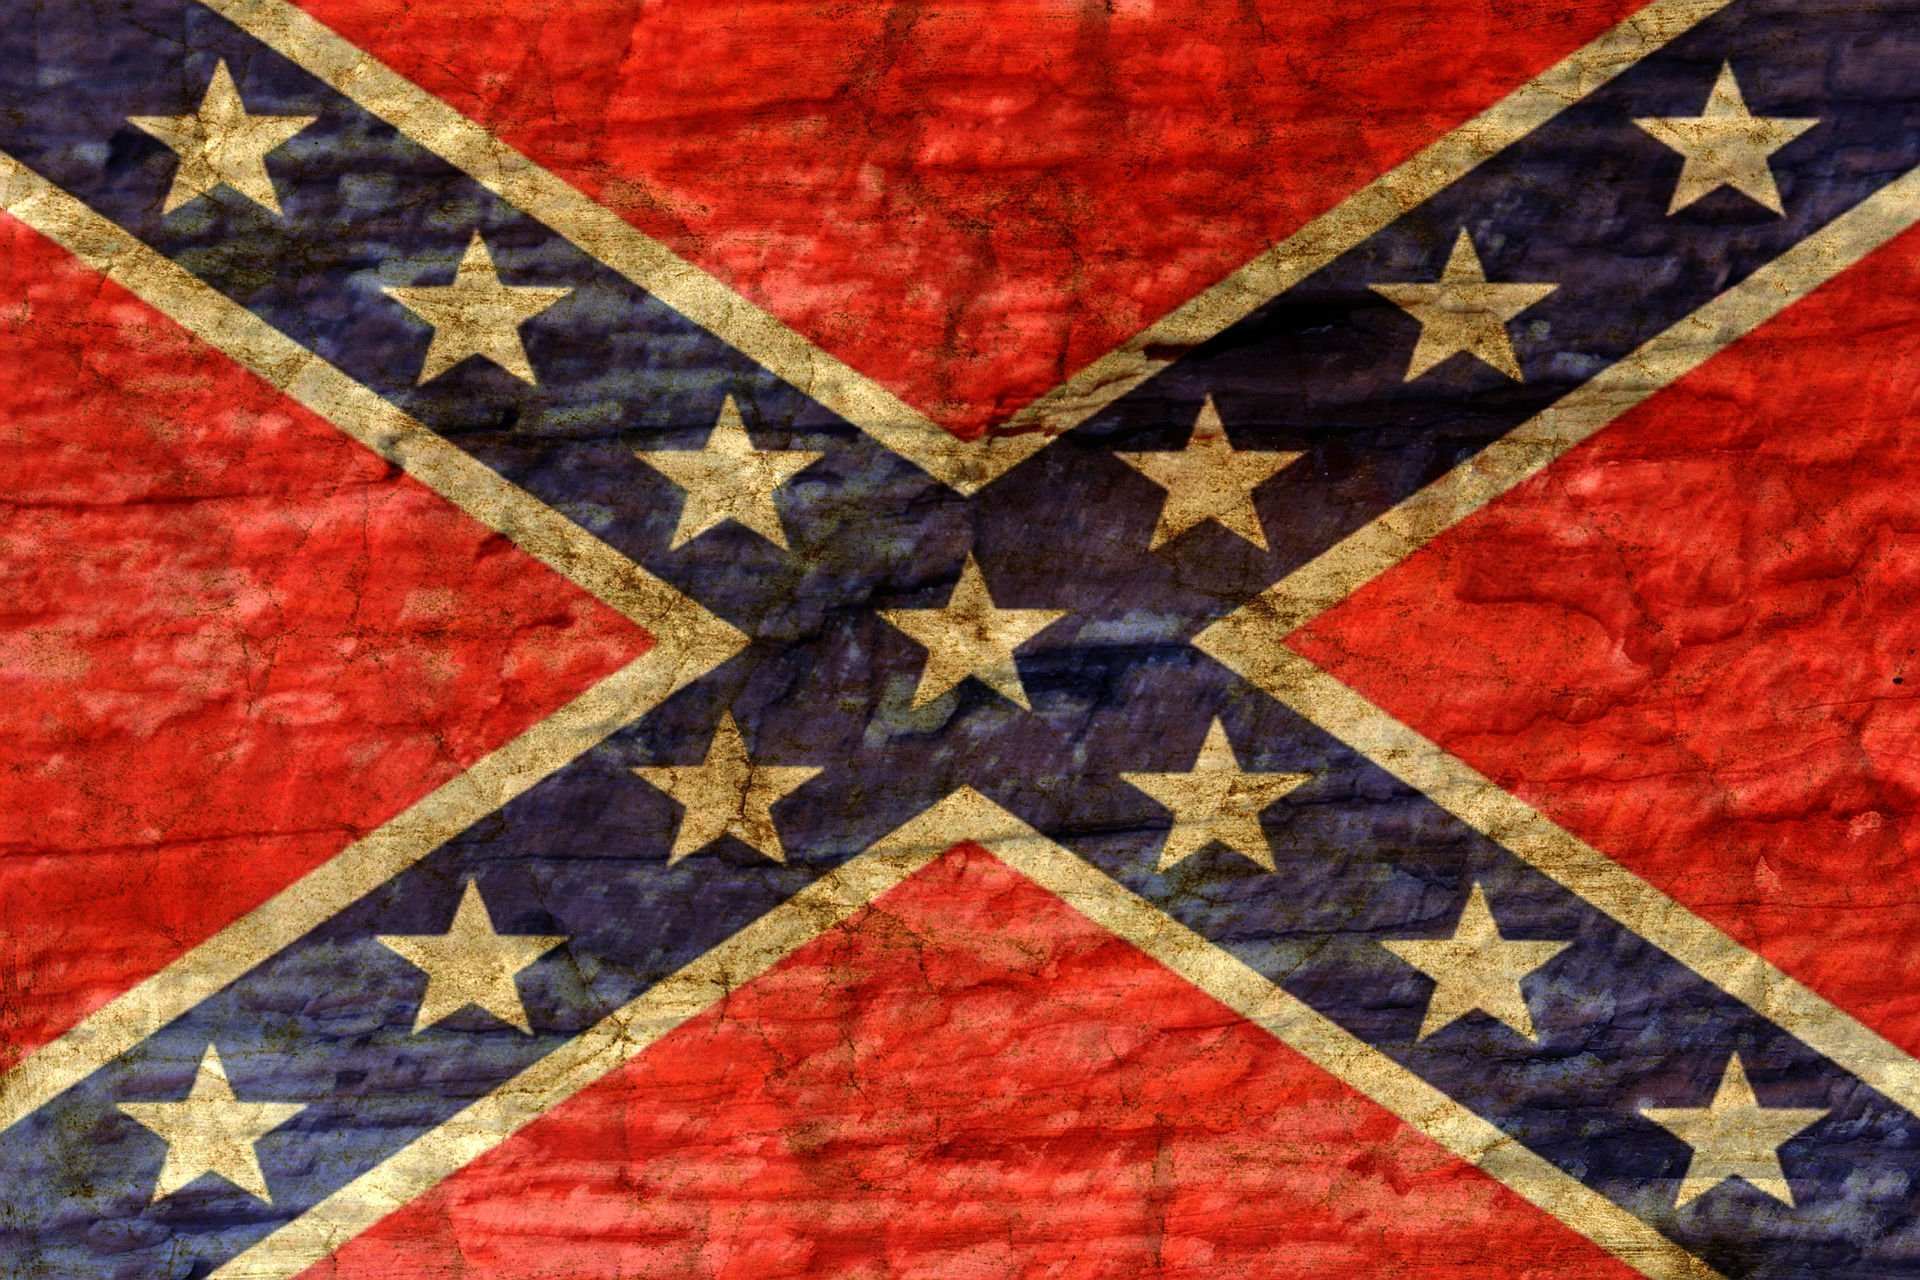 Free Download Confederate Flag Usa America United States Csa Civil War Rebel Dixie 1920x1280 For Your Desktop Mobile Tablet Explore 50 Confederate Flag Wallpaper For Iphone Confederate Flag Wallpaper